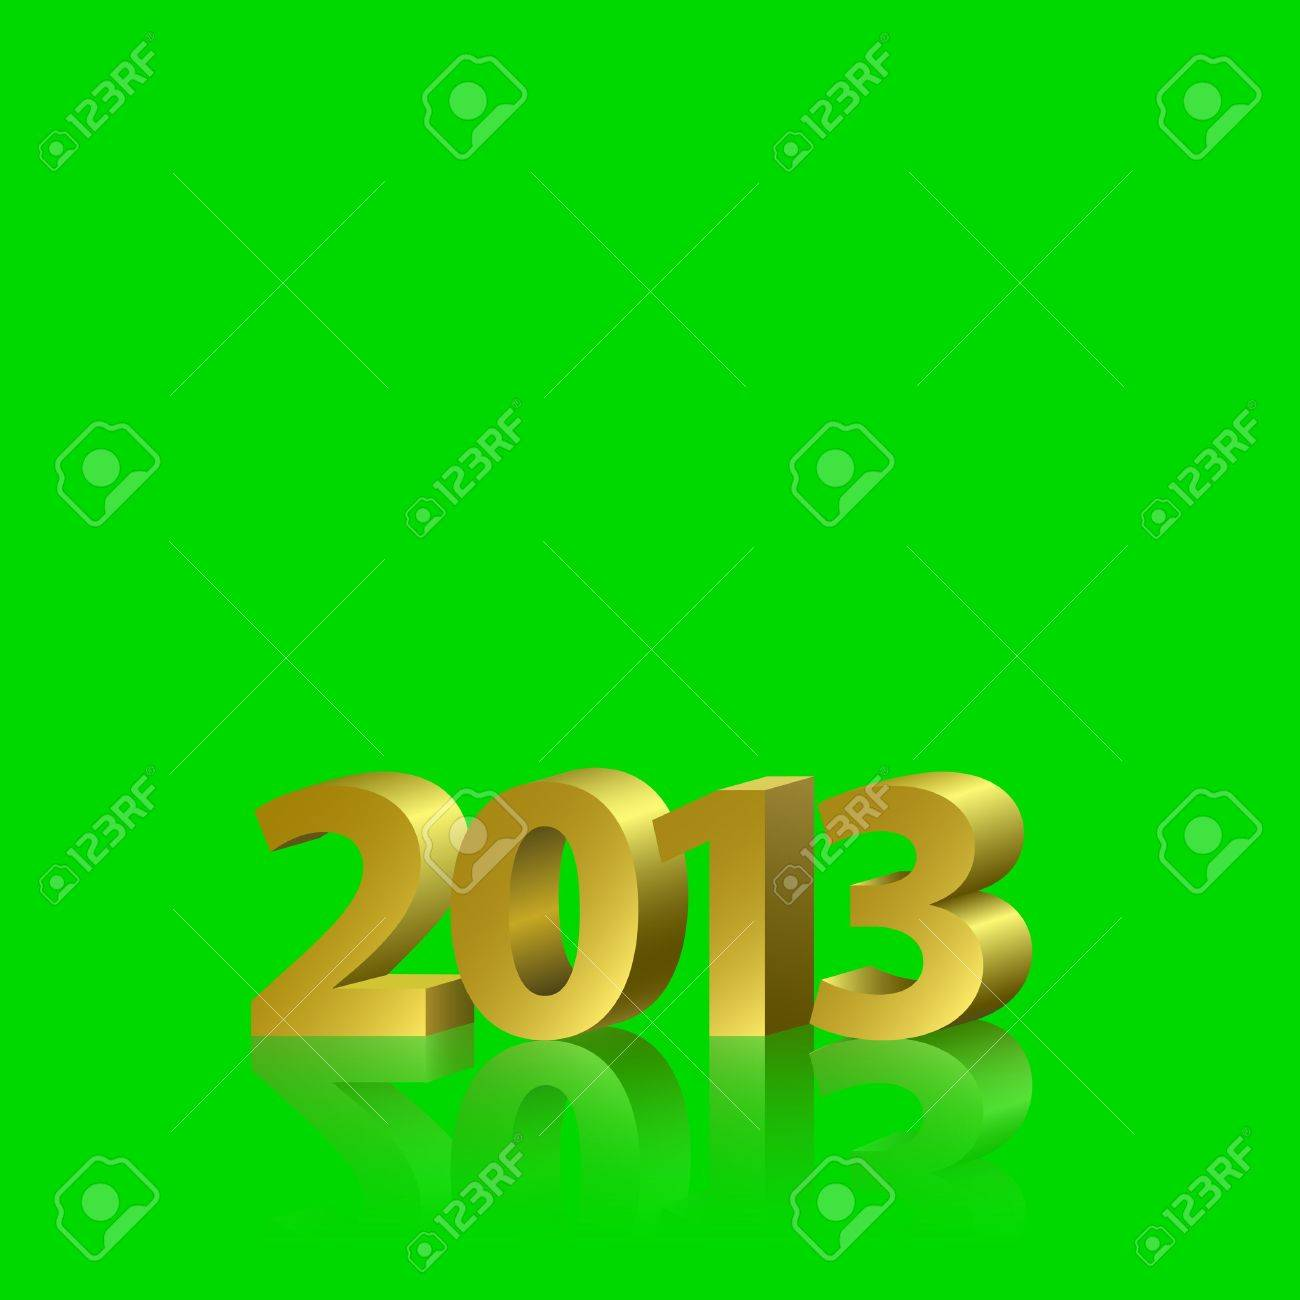 2013 new year banner golden letters on the green screen removable chroma key background